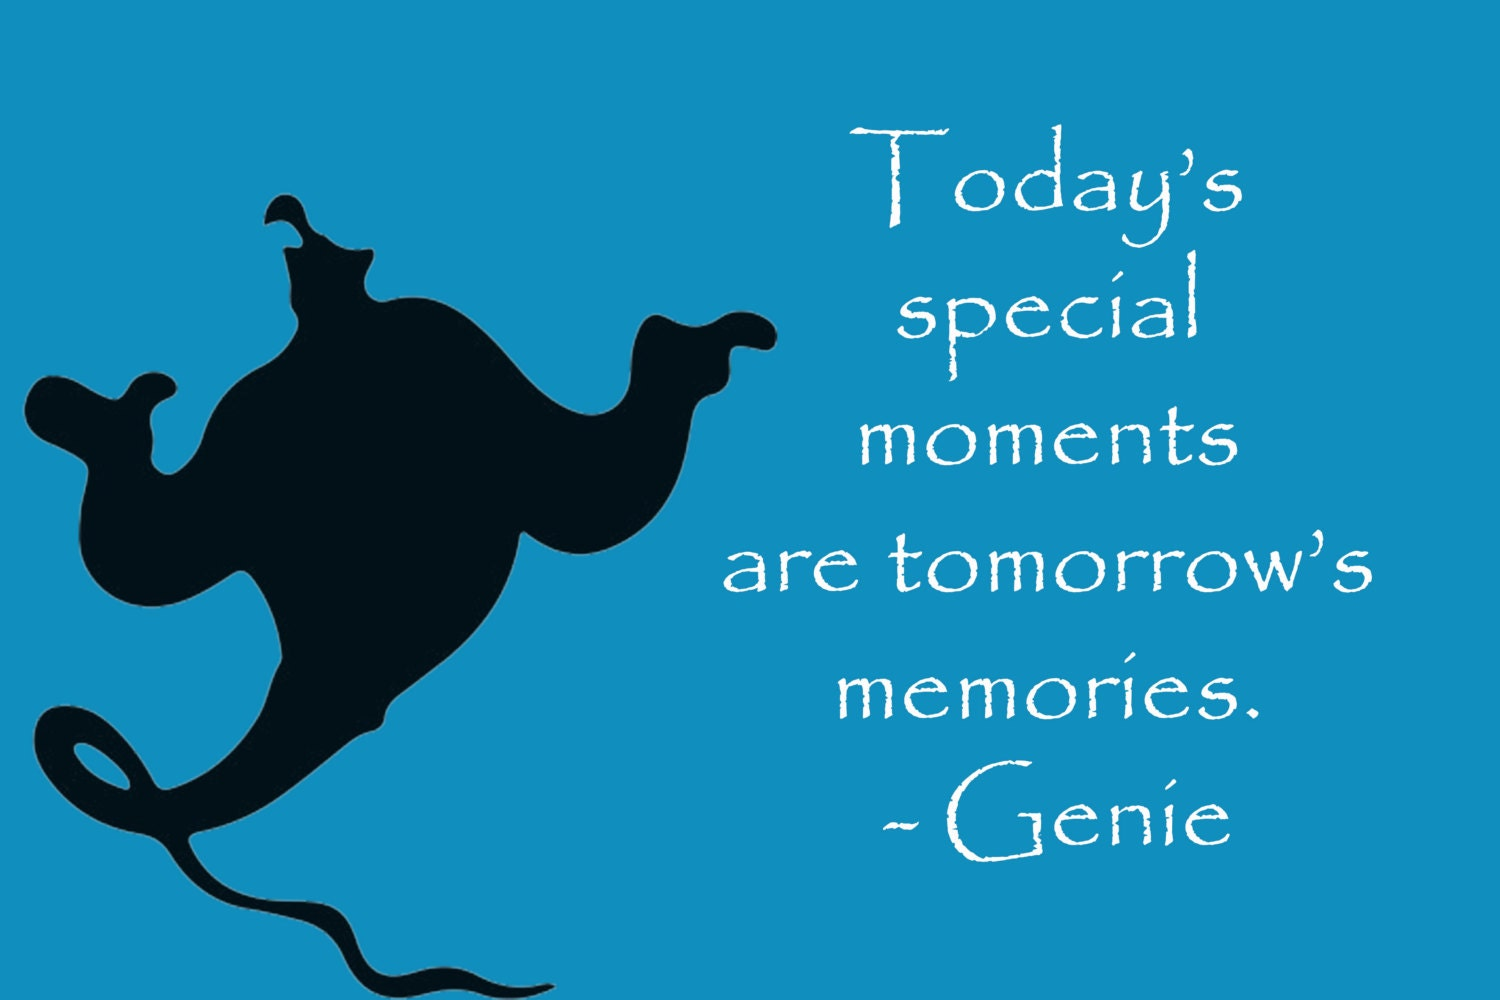 genie quotes the hippest pics